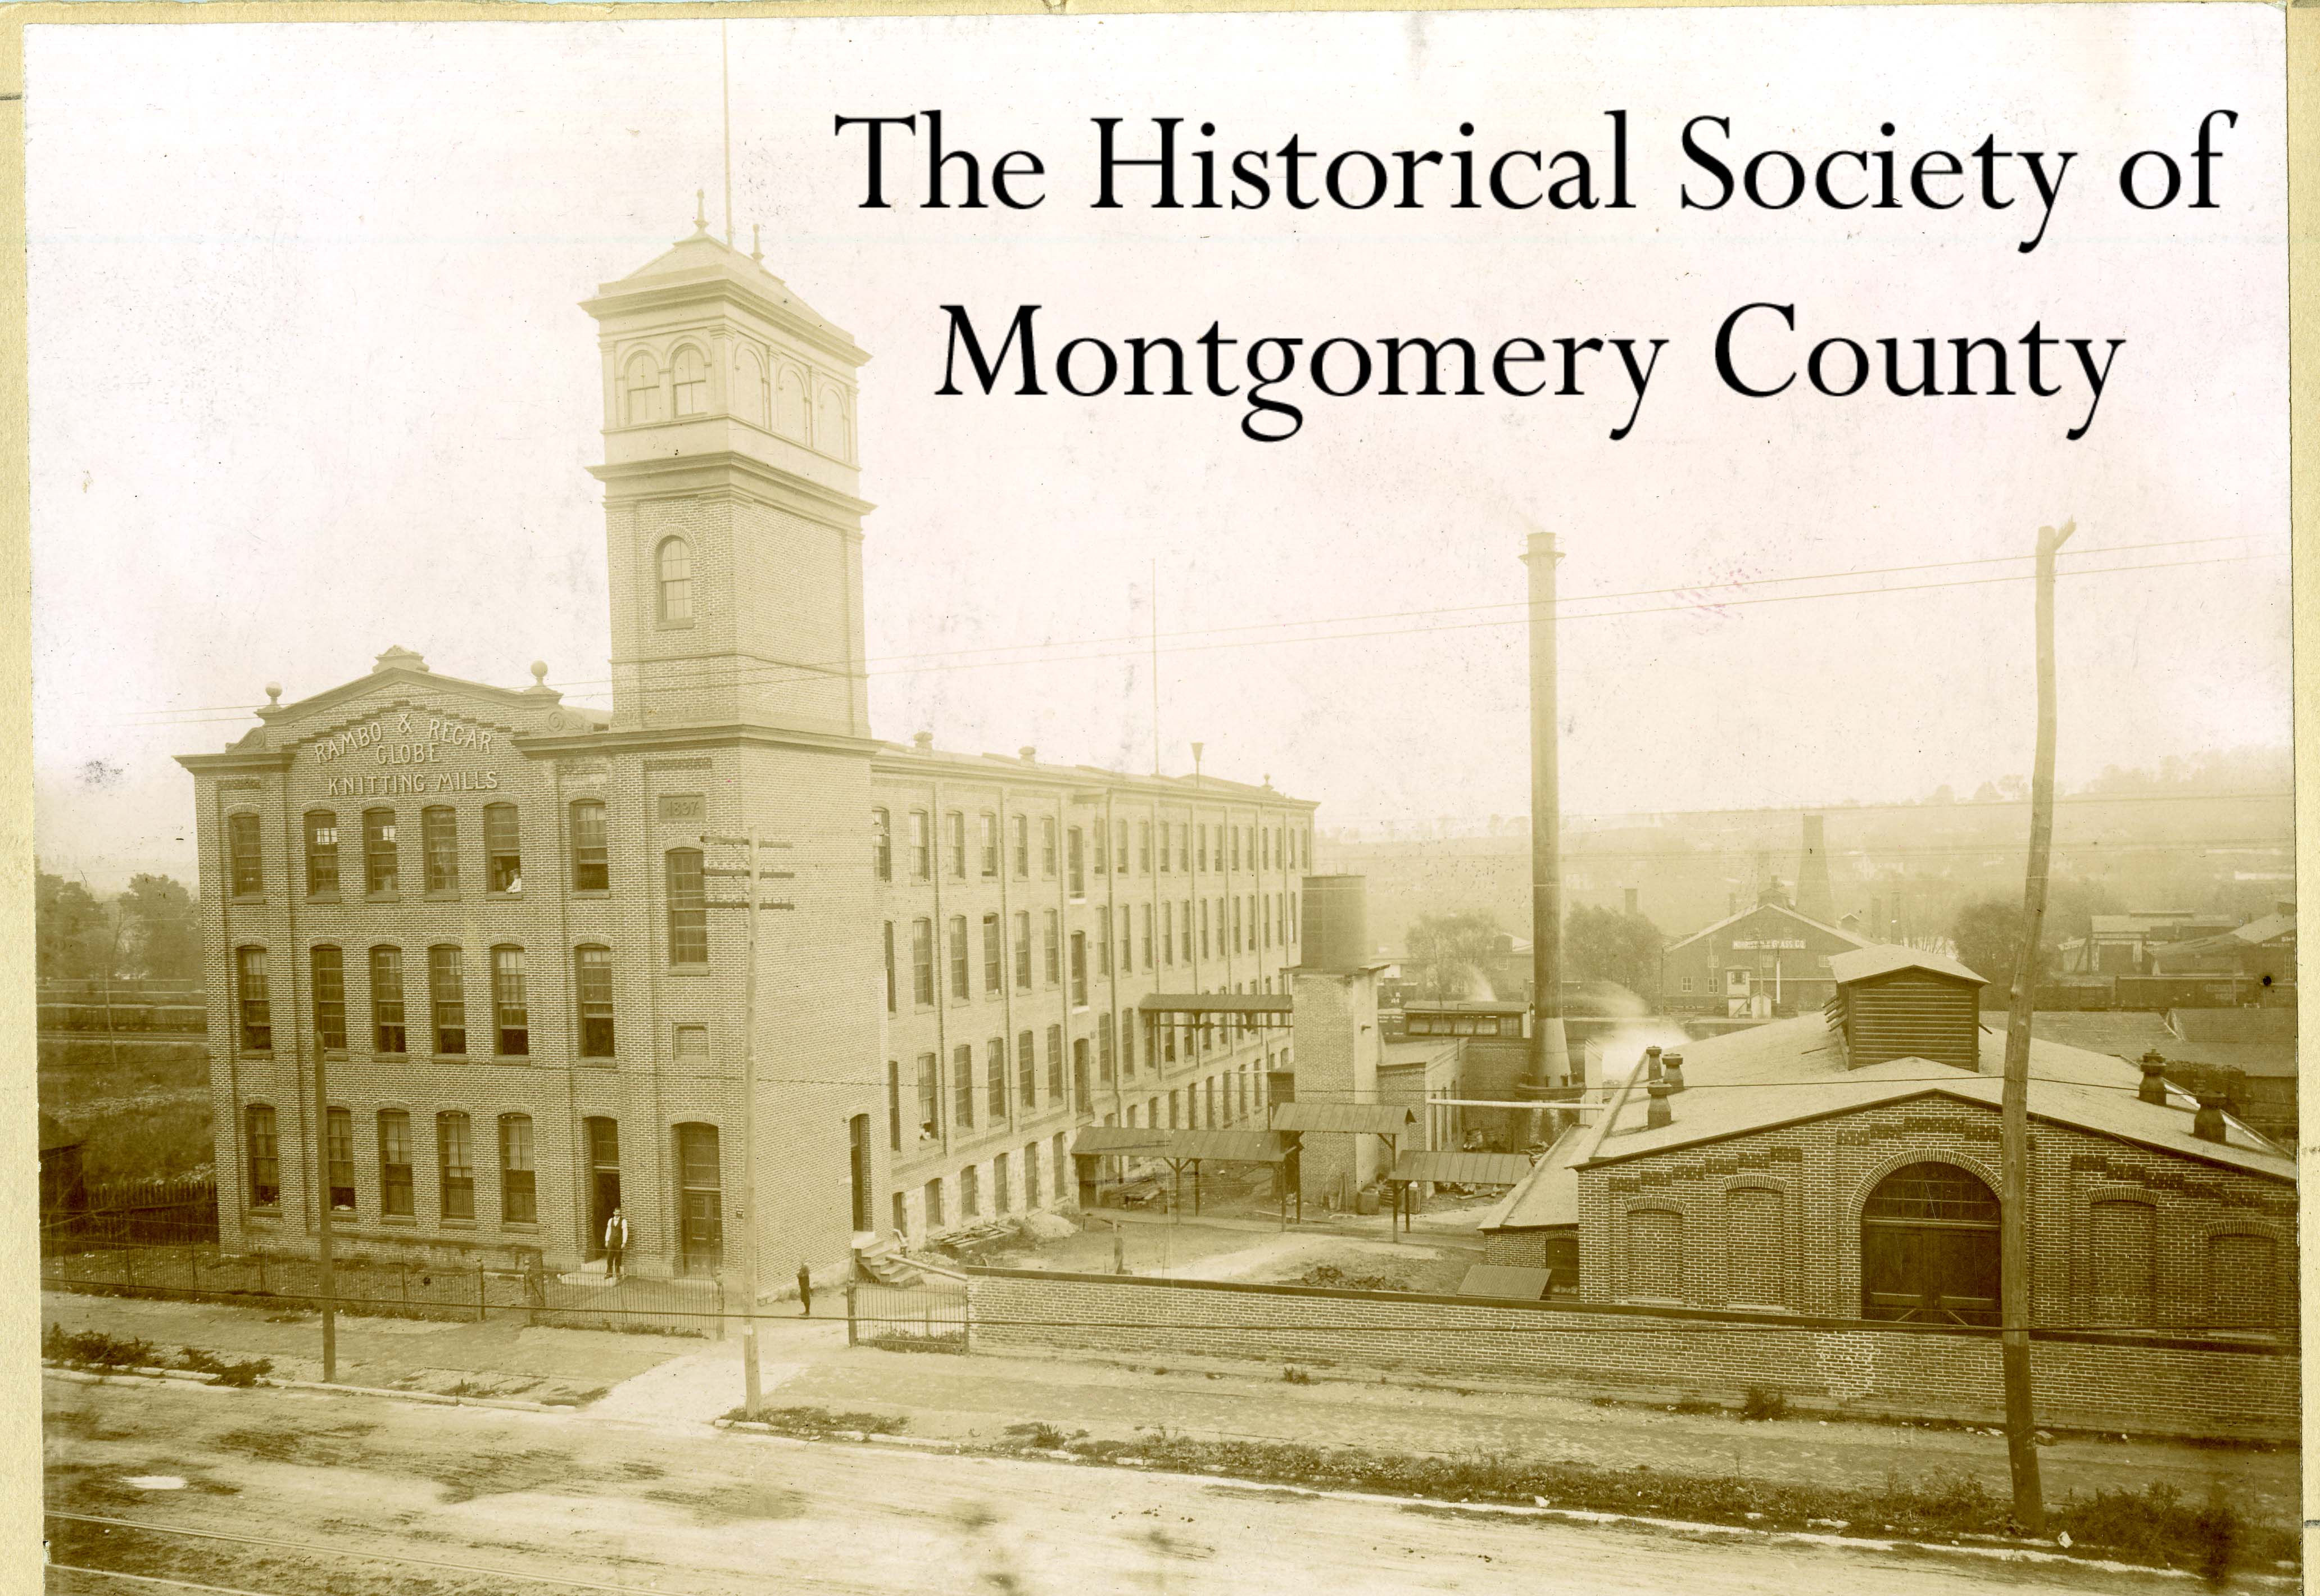 Knitting History Society : Found in collection historical society of montgomery